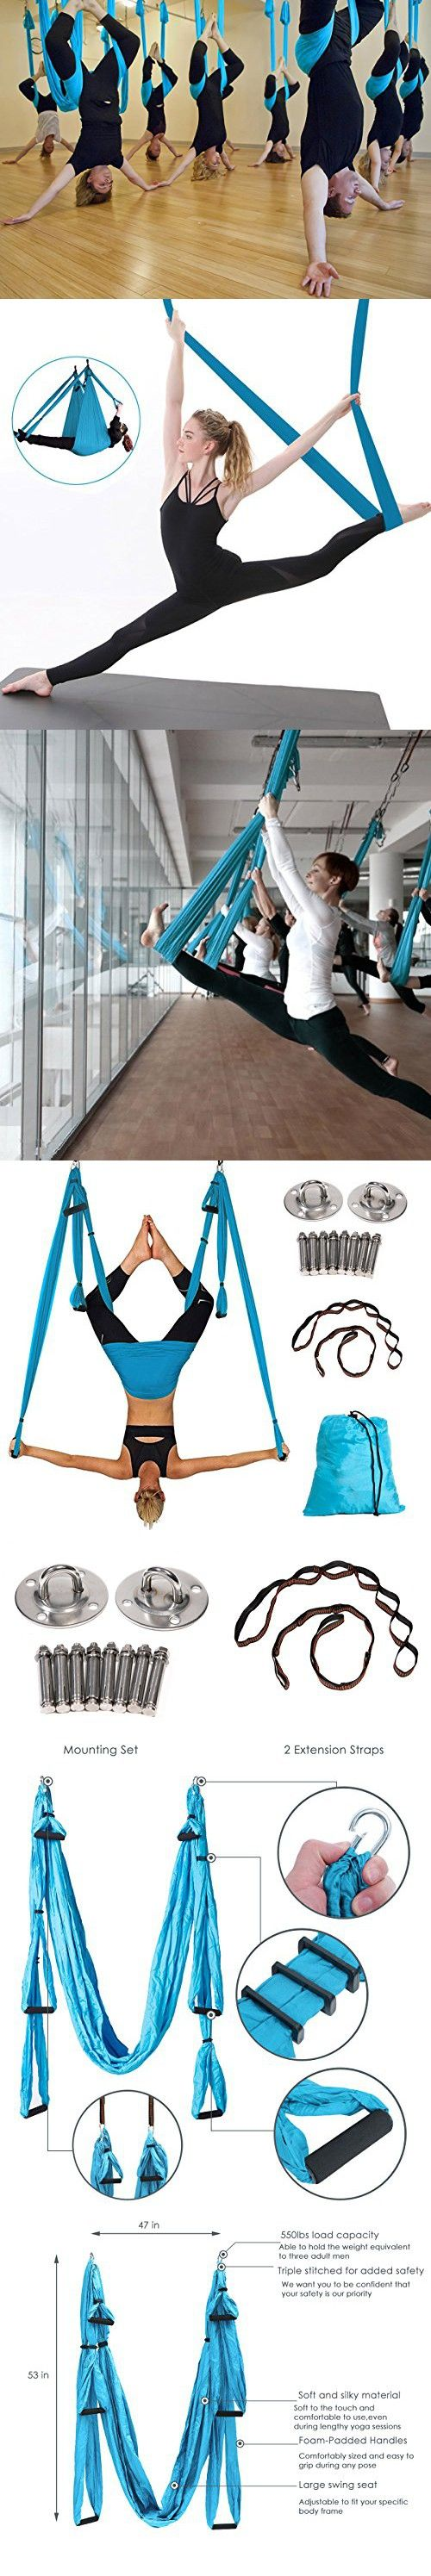 Christmas Sale Aerial Yoga Swing For Antigravity And Inversion Exercises With 2 Extension Straps Air Yoga Hanging Swing Blue Yoga Swing Aerial Yoga Air Yoga